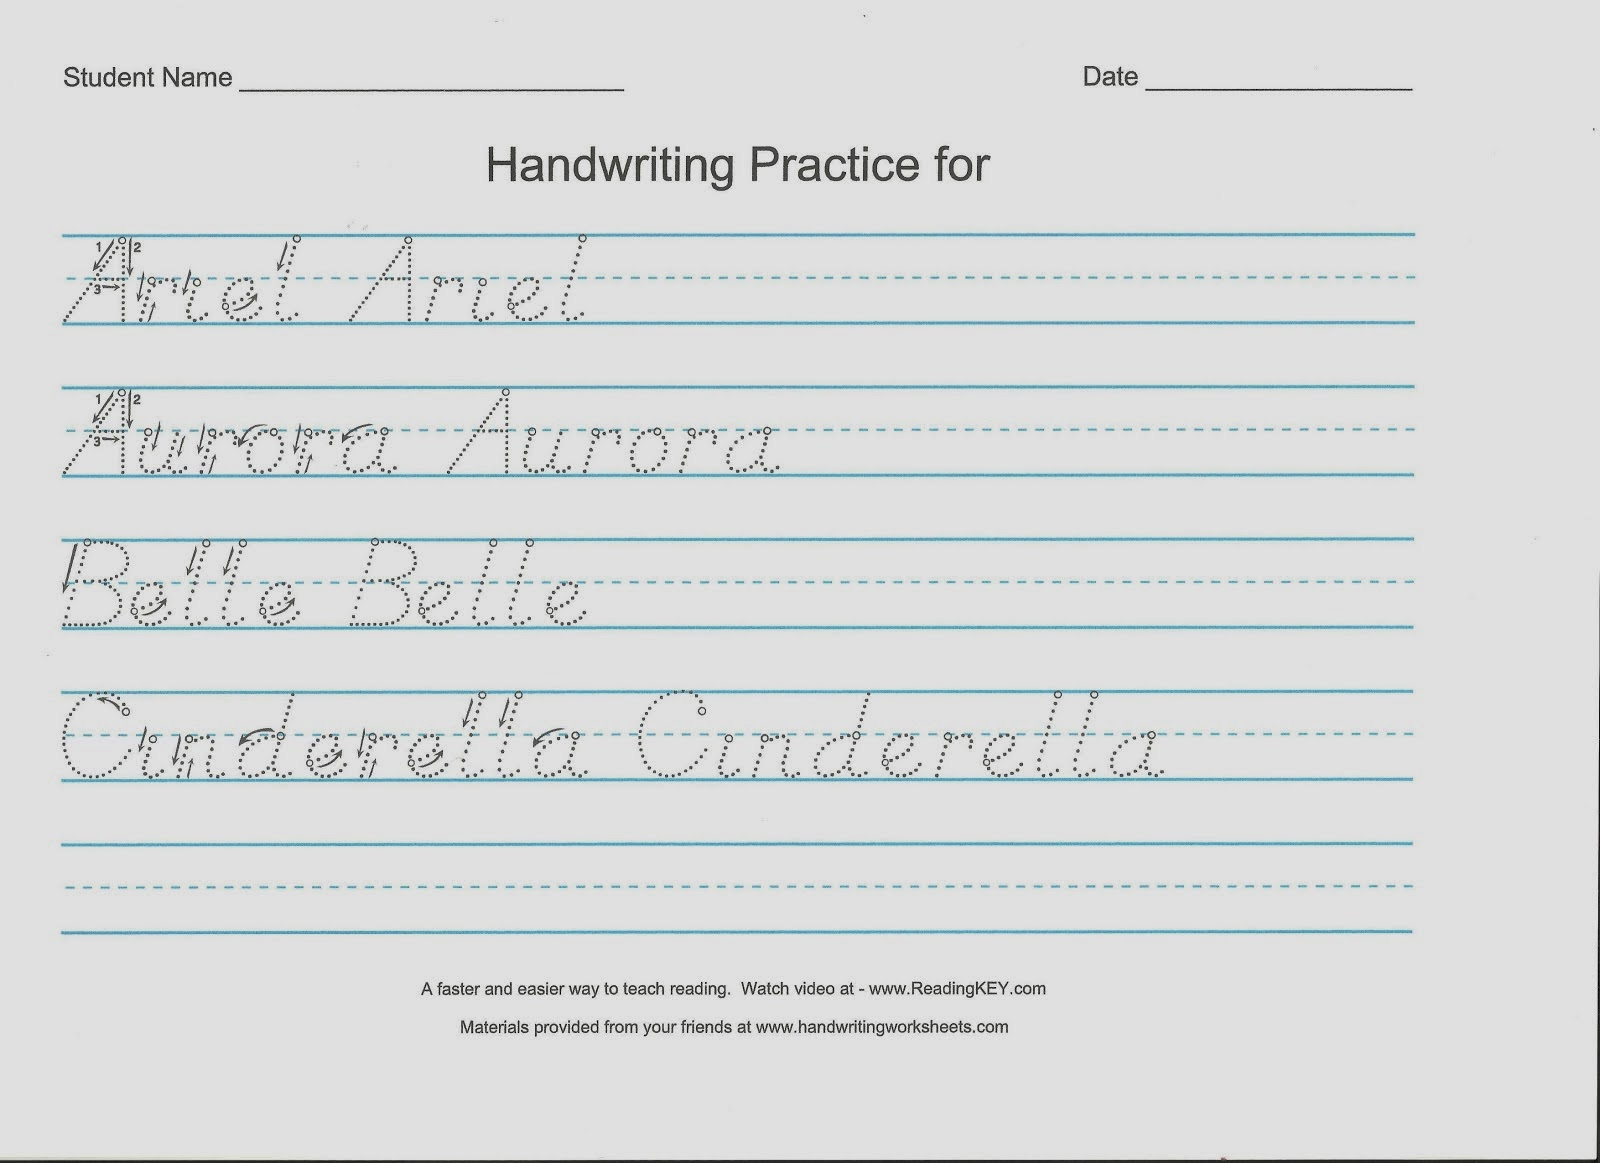 Free Worksheet Handwriting Worksheets Pdf handwriting worksheets worksheet workbook site practice sheets hand writing